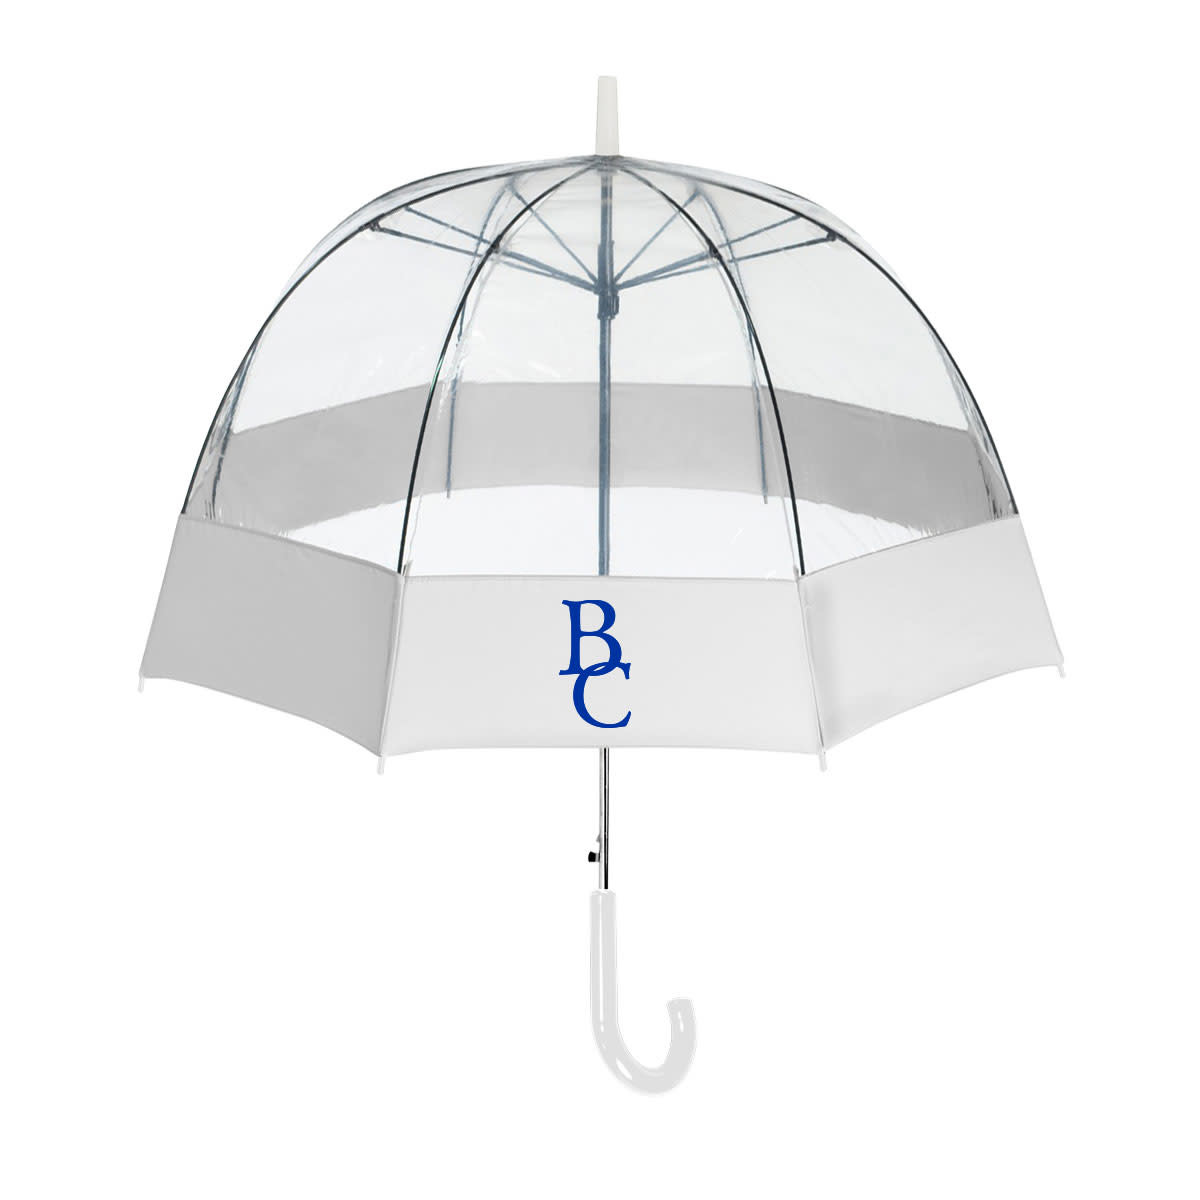 Auto Open BC Fabric Bubble Border Umbrella-1